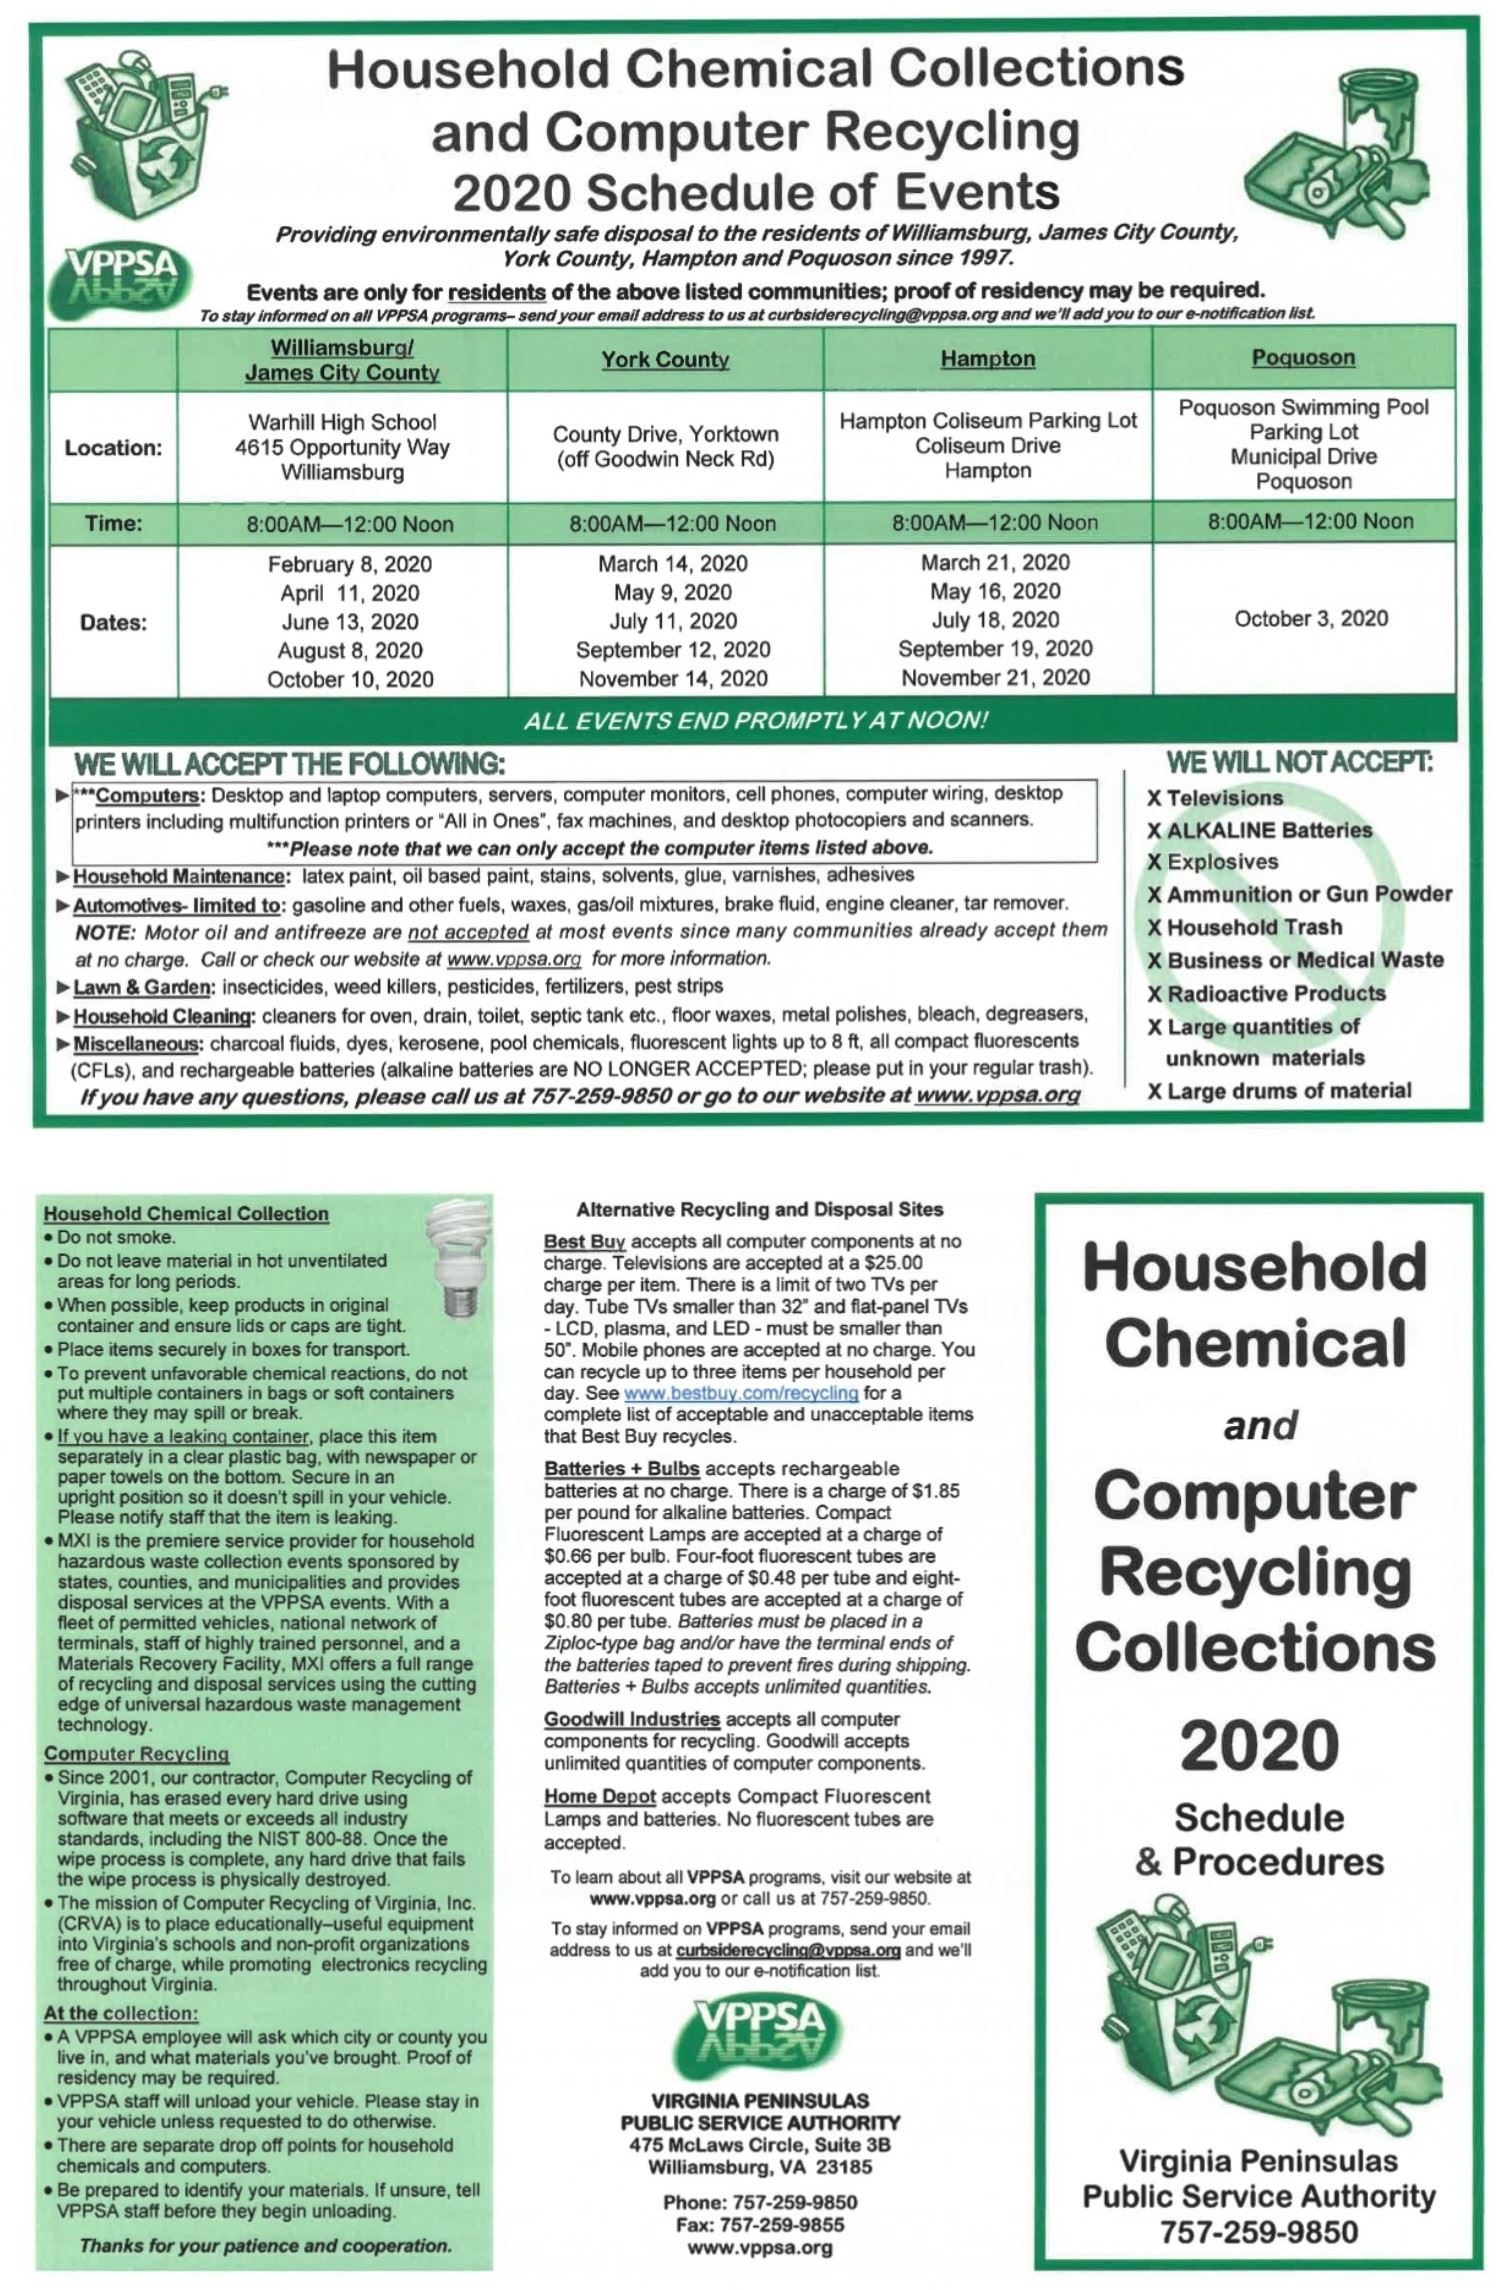 Household Chemical Collection VPPSA Flyer 2020